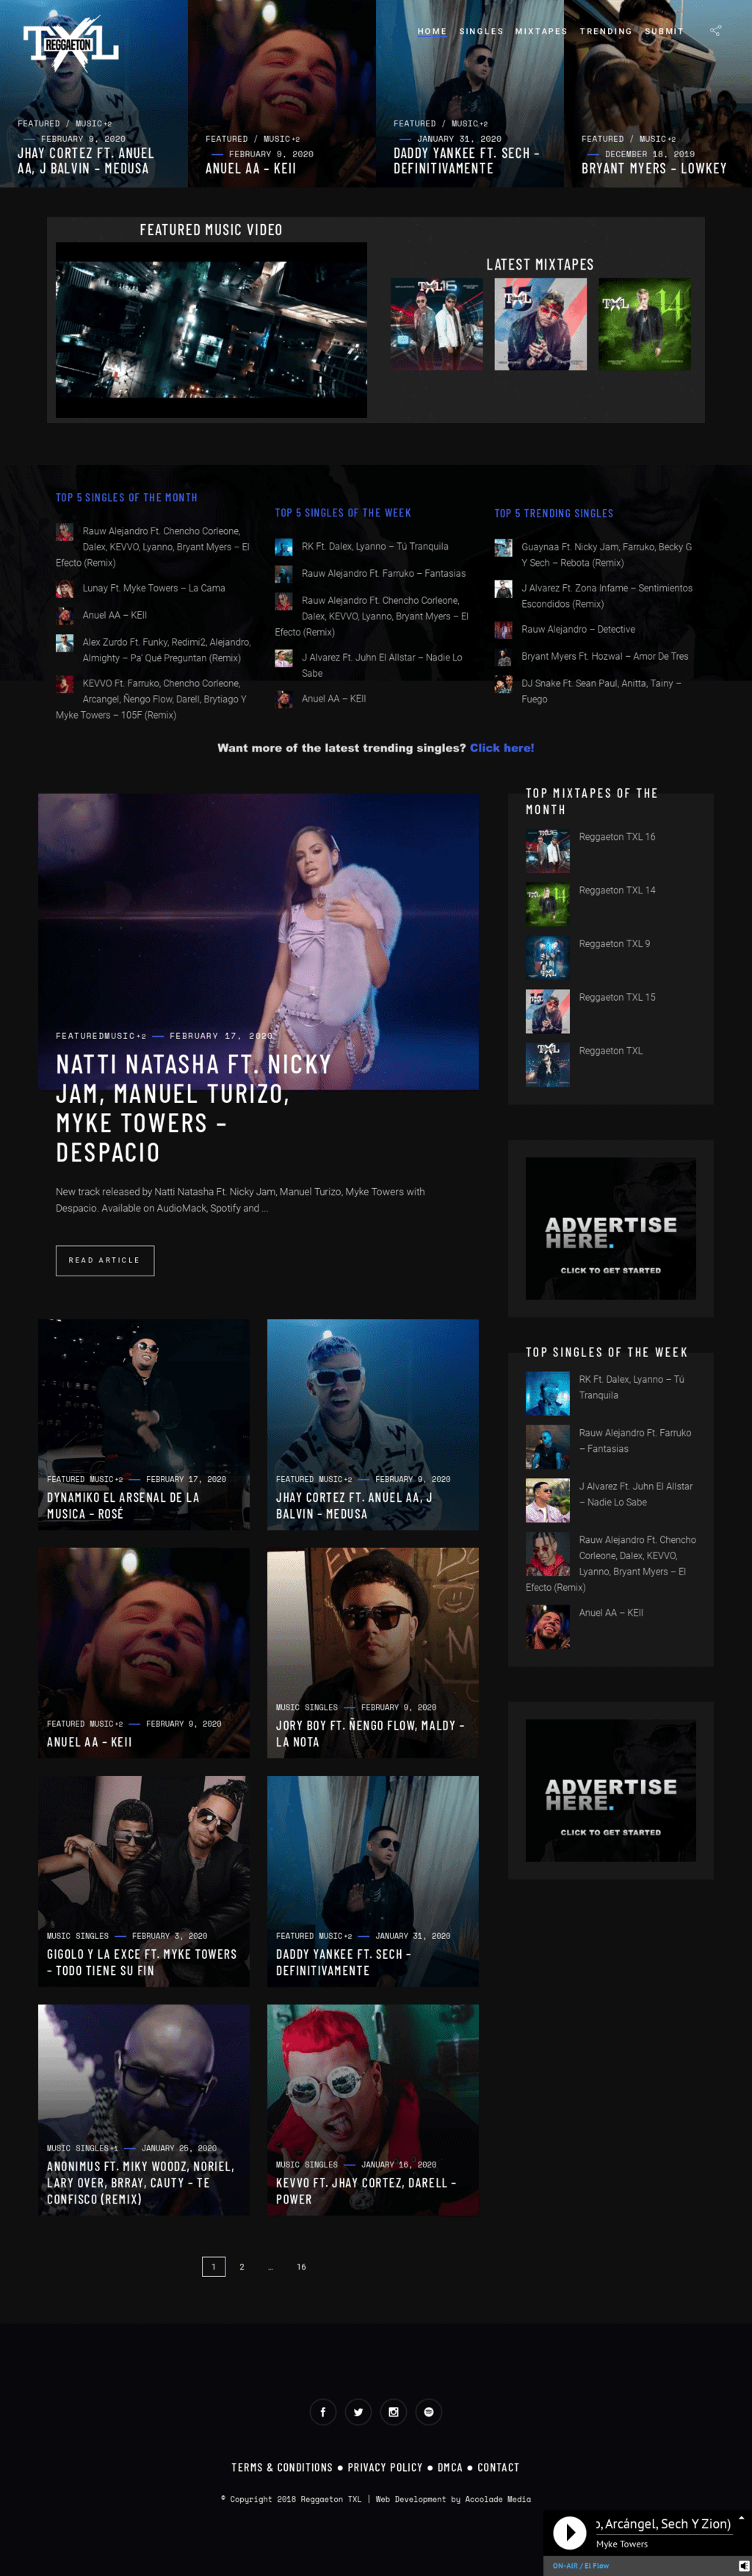 reggaetontxl-website-design-layout-accolademedia